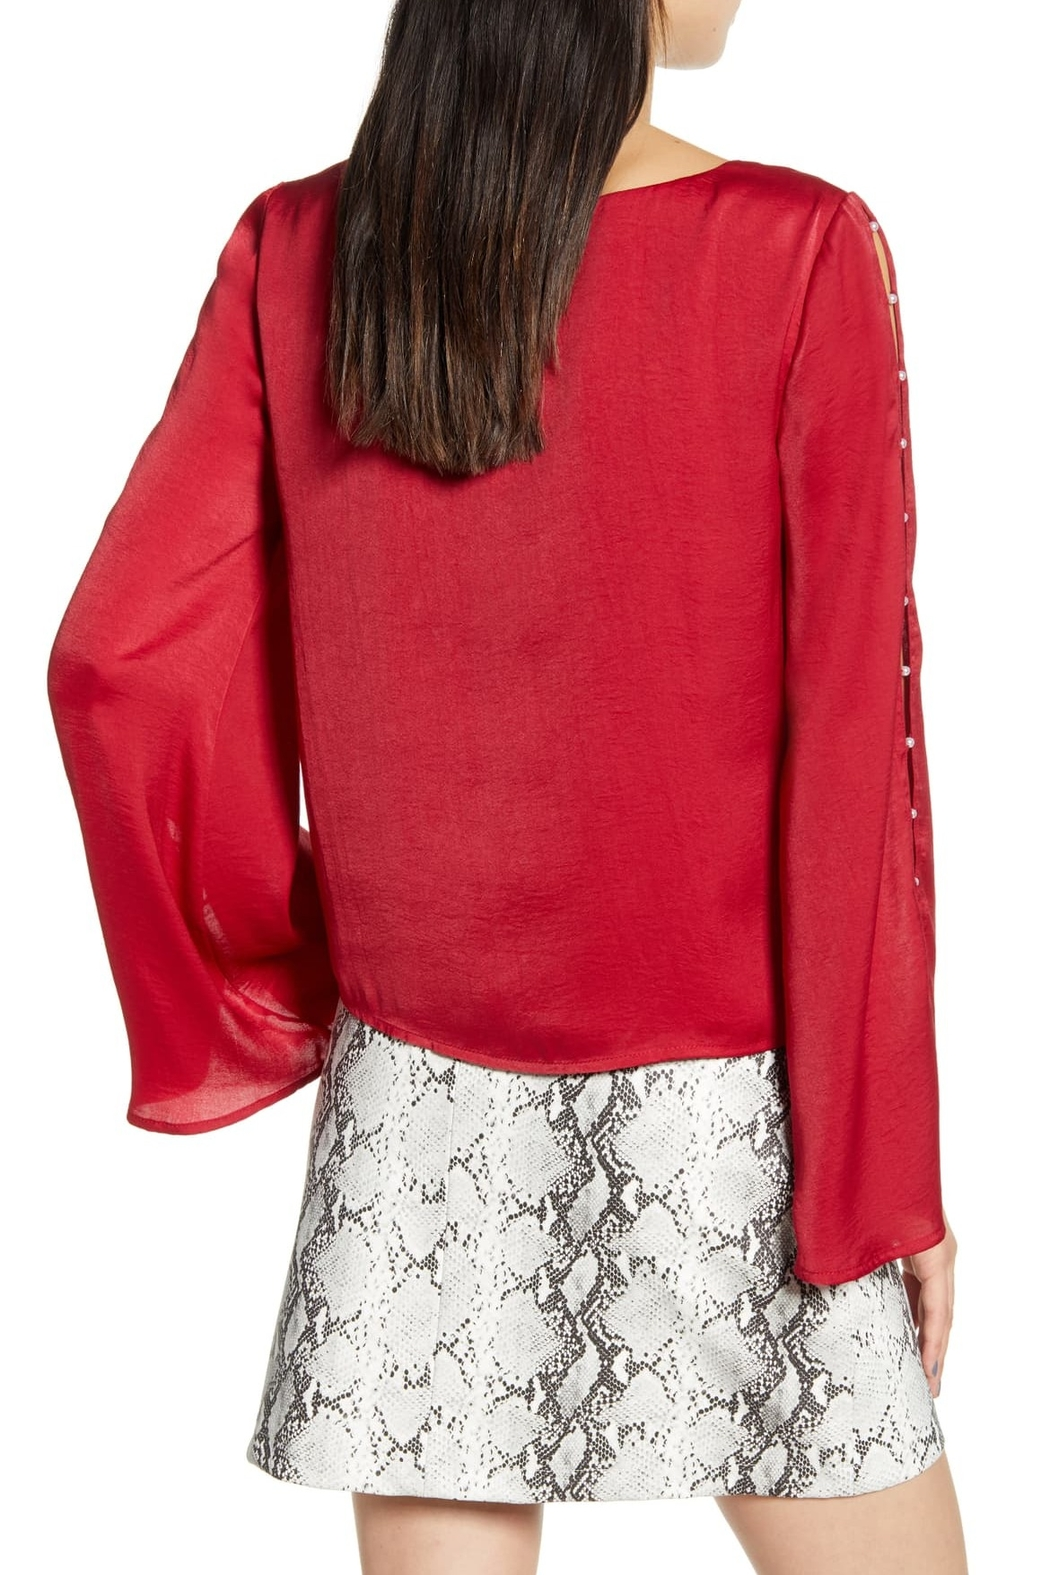 Cupcakes & Cashmere Perlata Blouse - Front Full Image